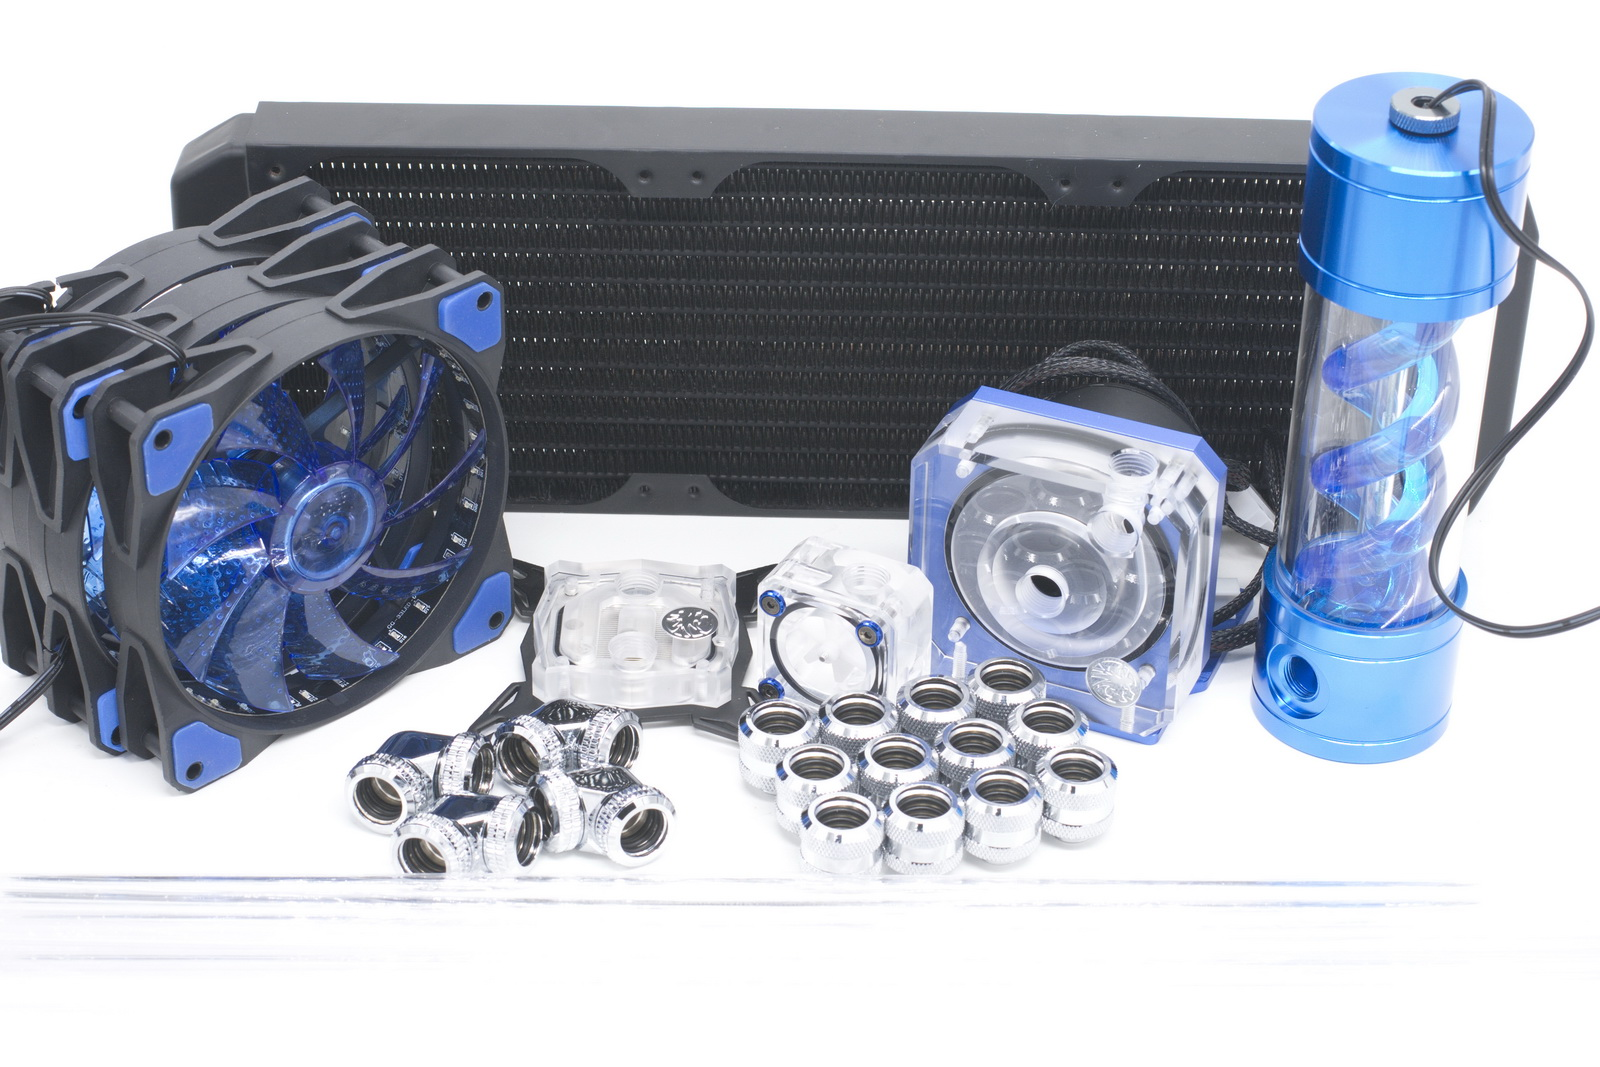 Bykski Water Cooling Kit for CPU Rigid Tube Intel AMD 360mm Copper Radiator bykski multicol water cooling block cpu radiator use for amd ryzen am3 am4 acrylic cooler block 0 5mm waterway matel bracket